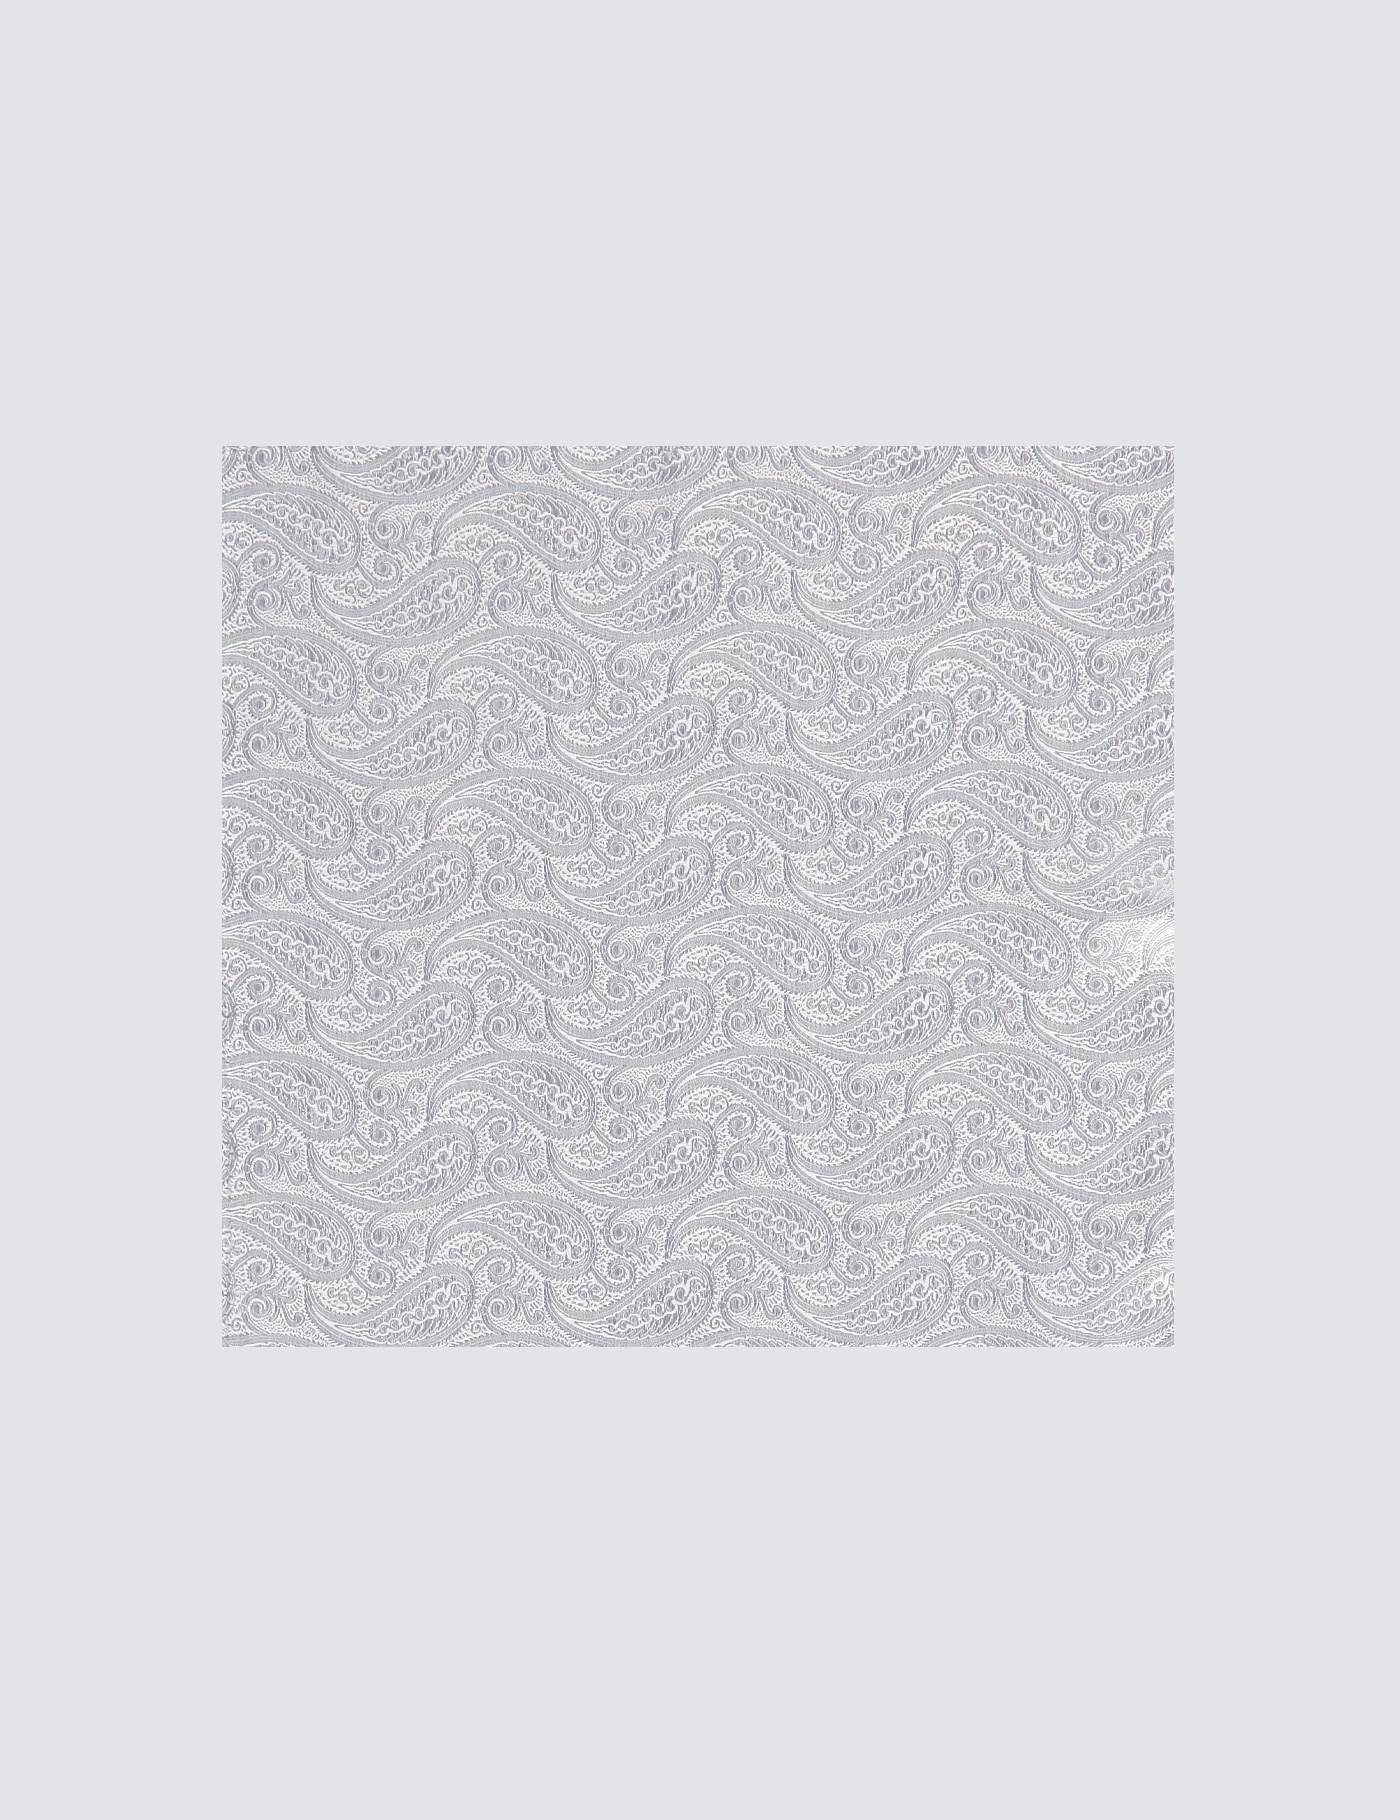 Hawes & Curtis Men's Paisley Pocket Square in Silver 100% Silk Hawes & Curtis